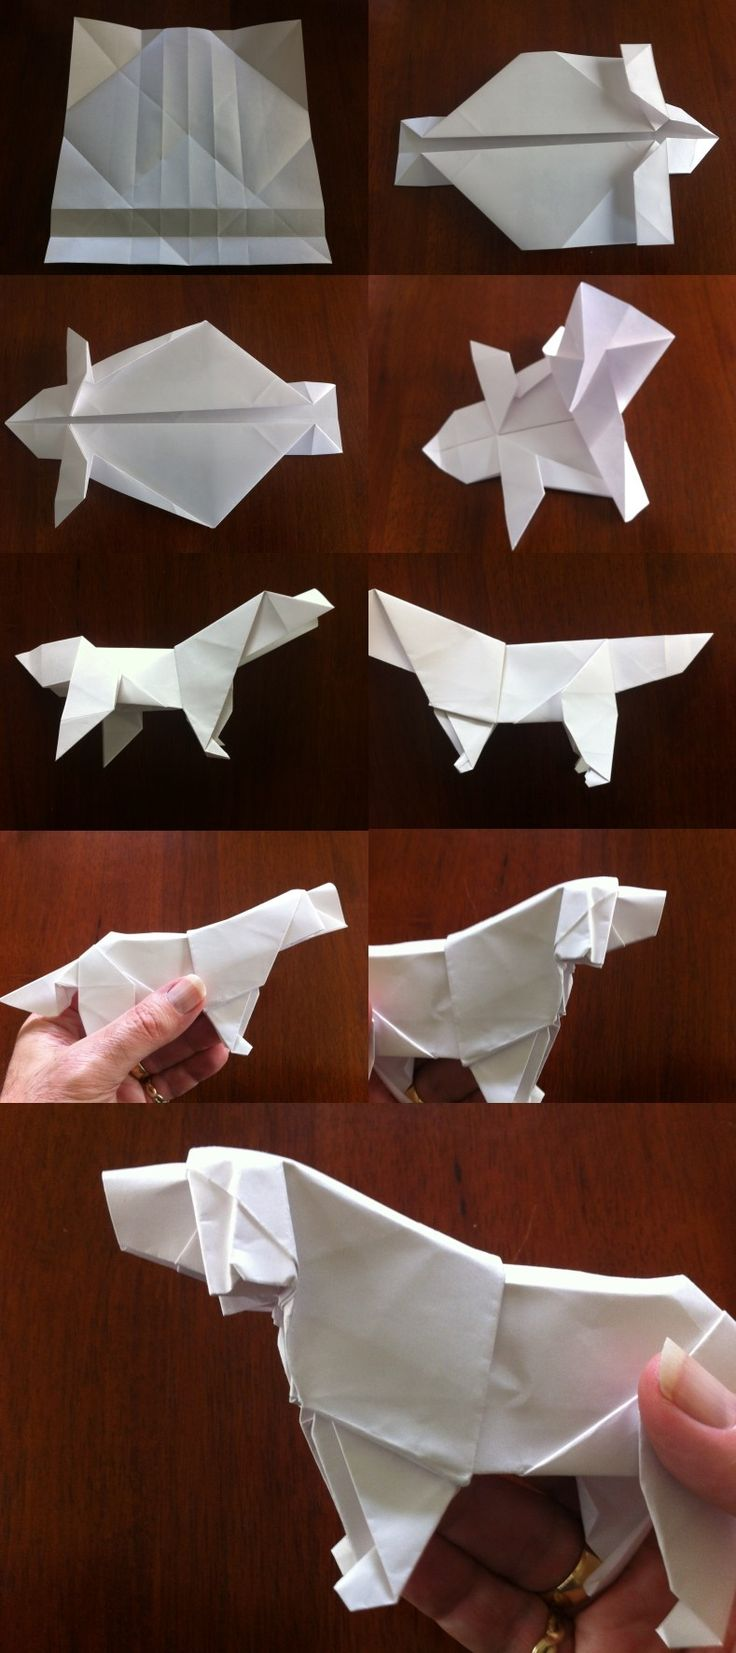 """As soon as I knew Satoshi was due to release a new book, I knew I had to have it: This is the first fold of my first model from """"The Works of Satoshi Kamiya 2"""", and it is quite recognis…"""